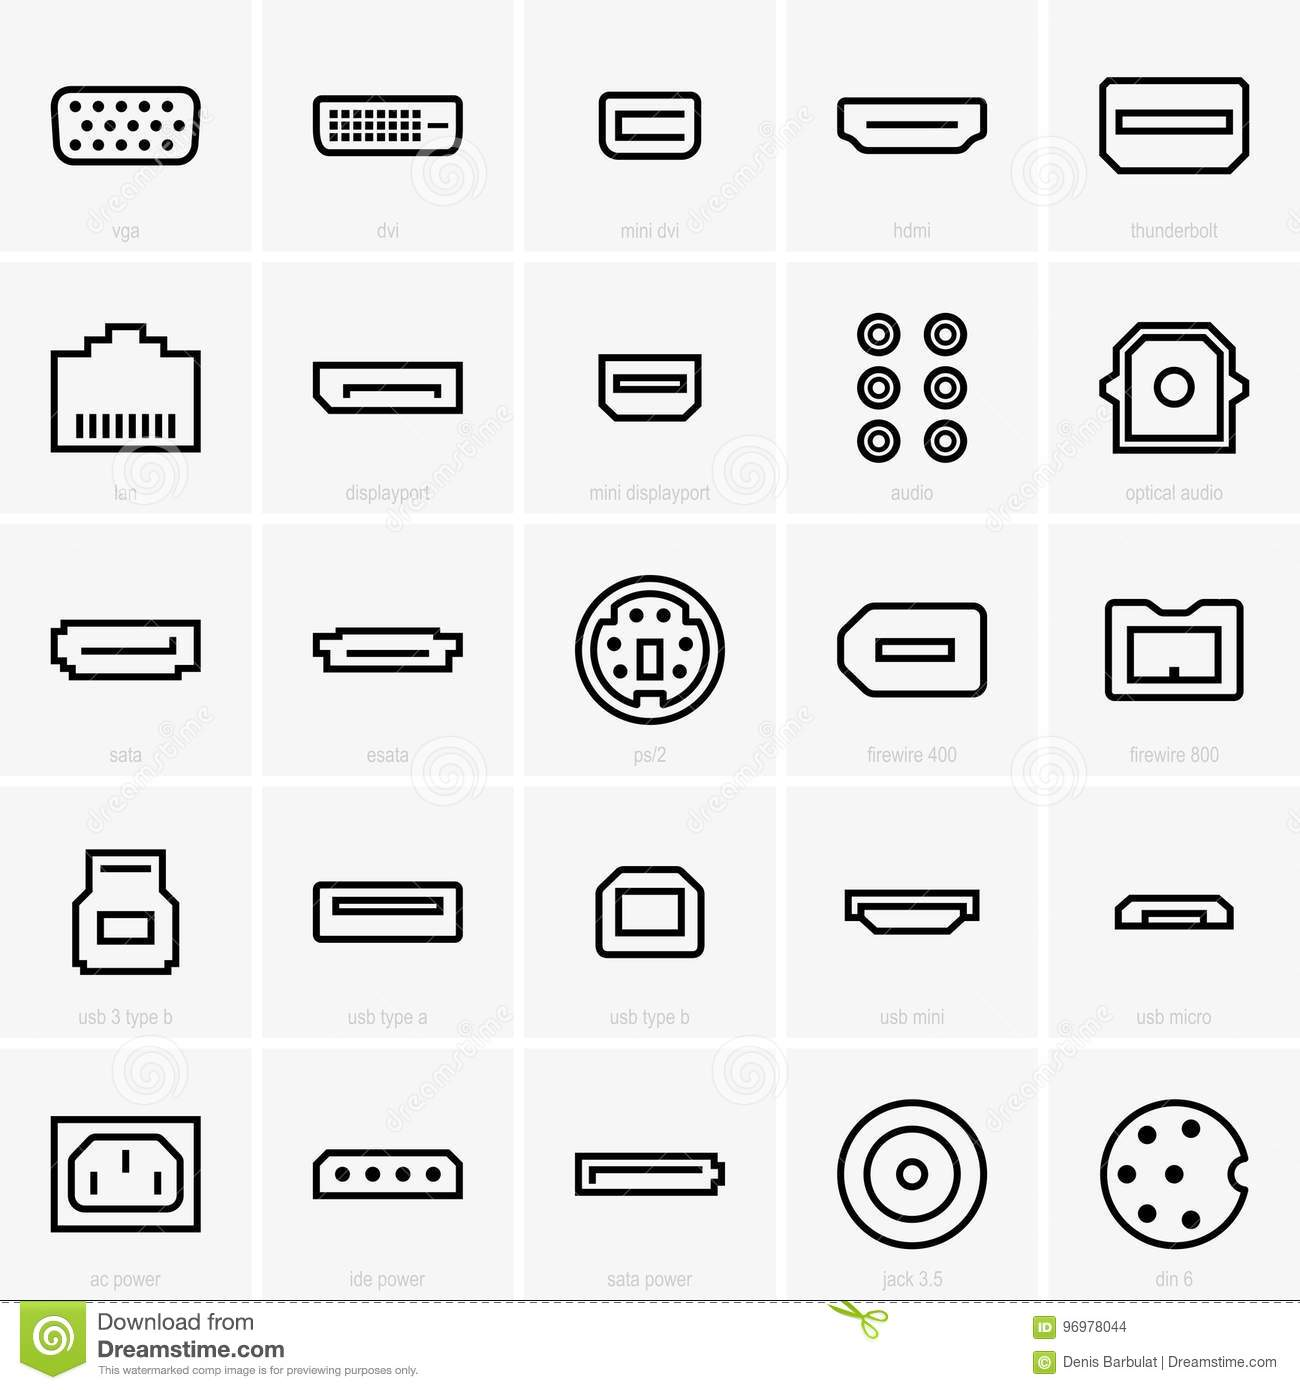 Interface icons stock vector. Illustration of esata, power